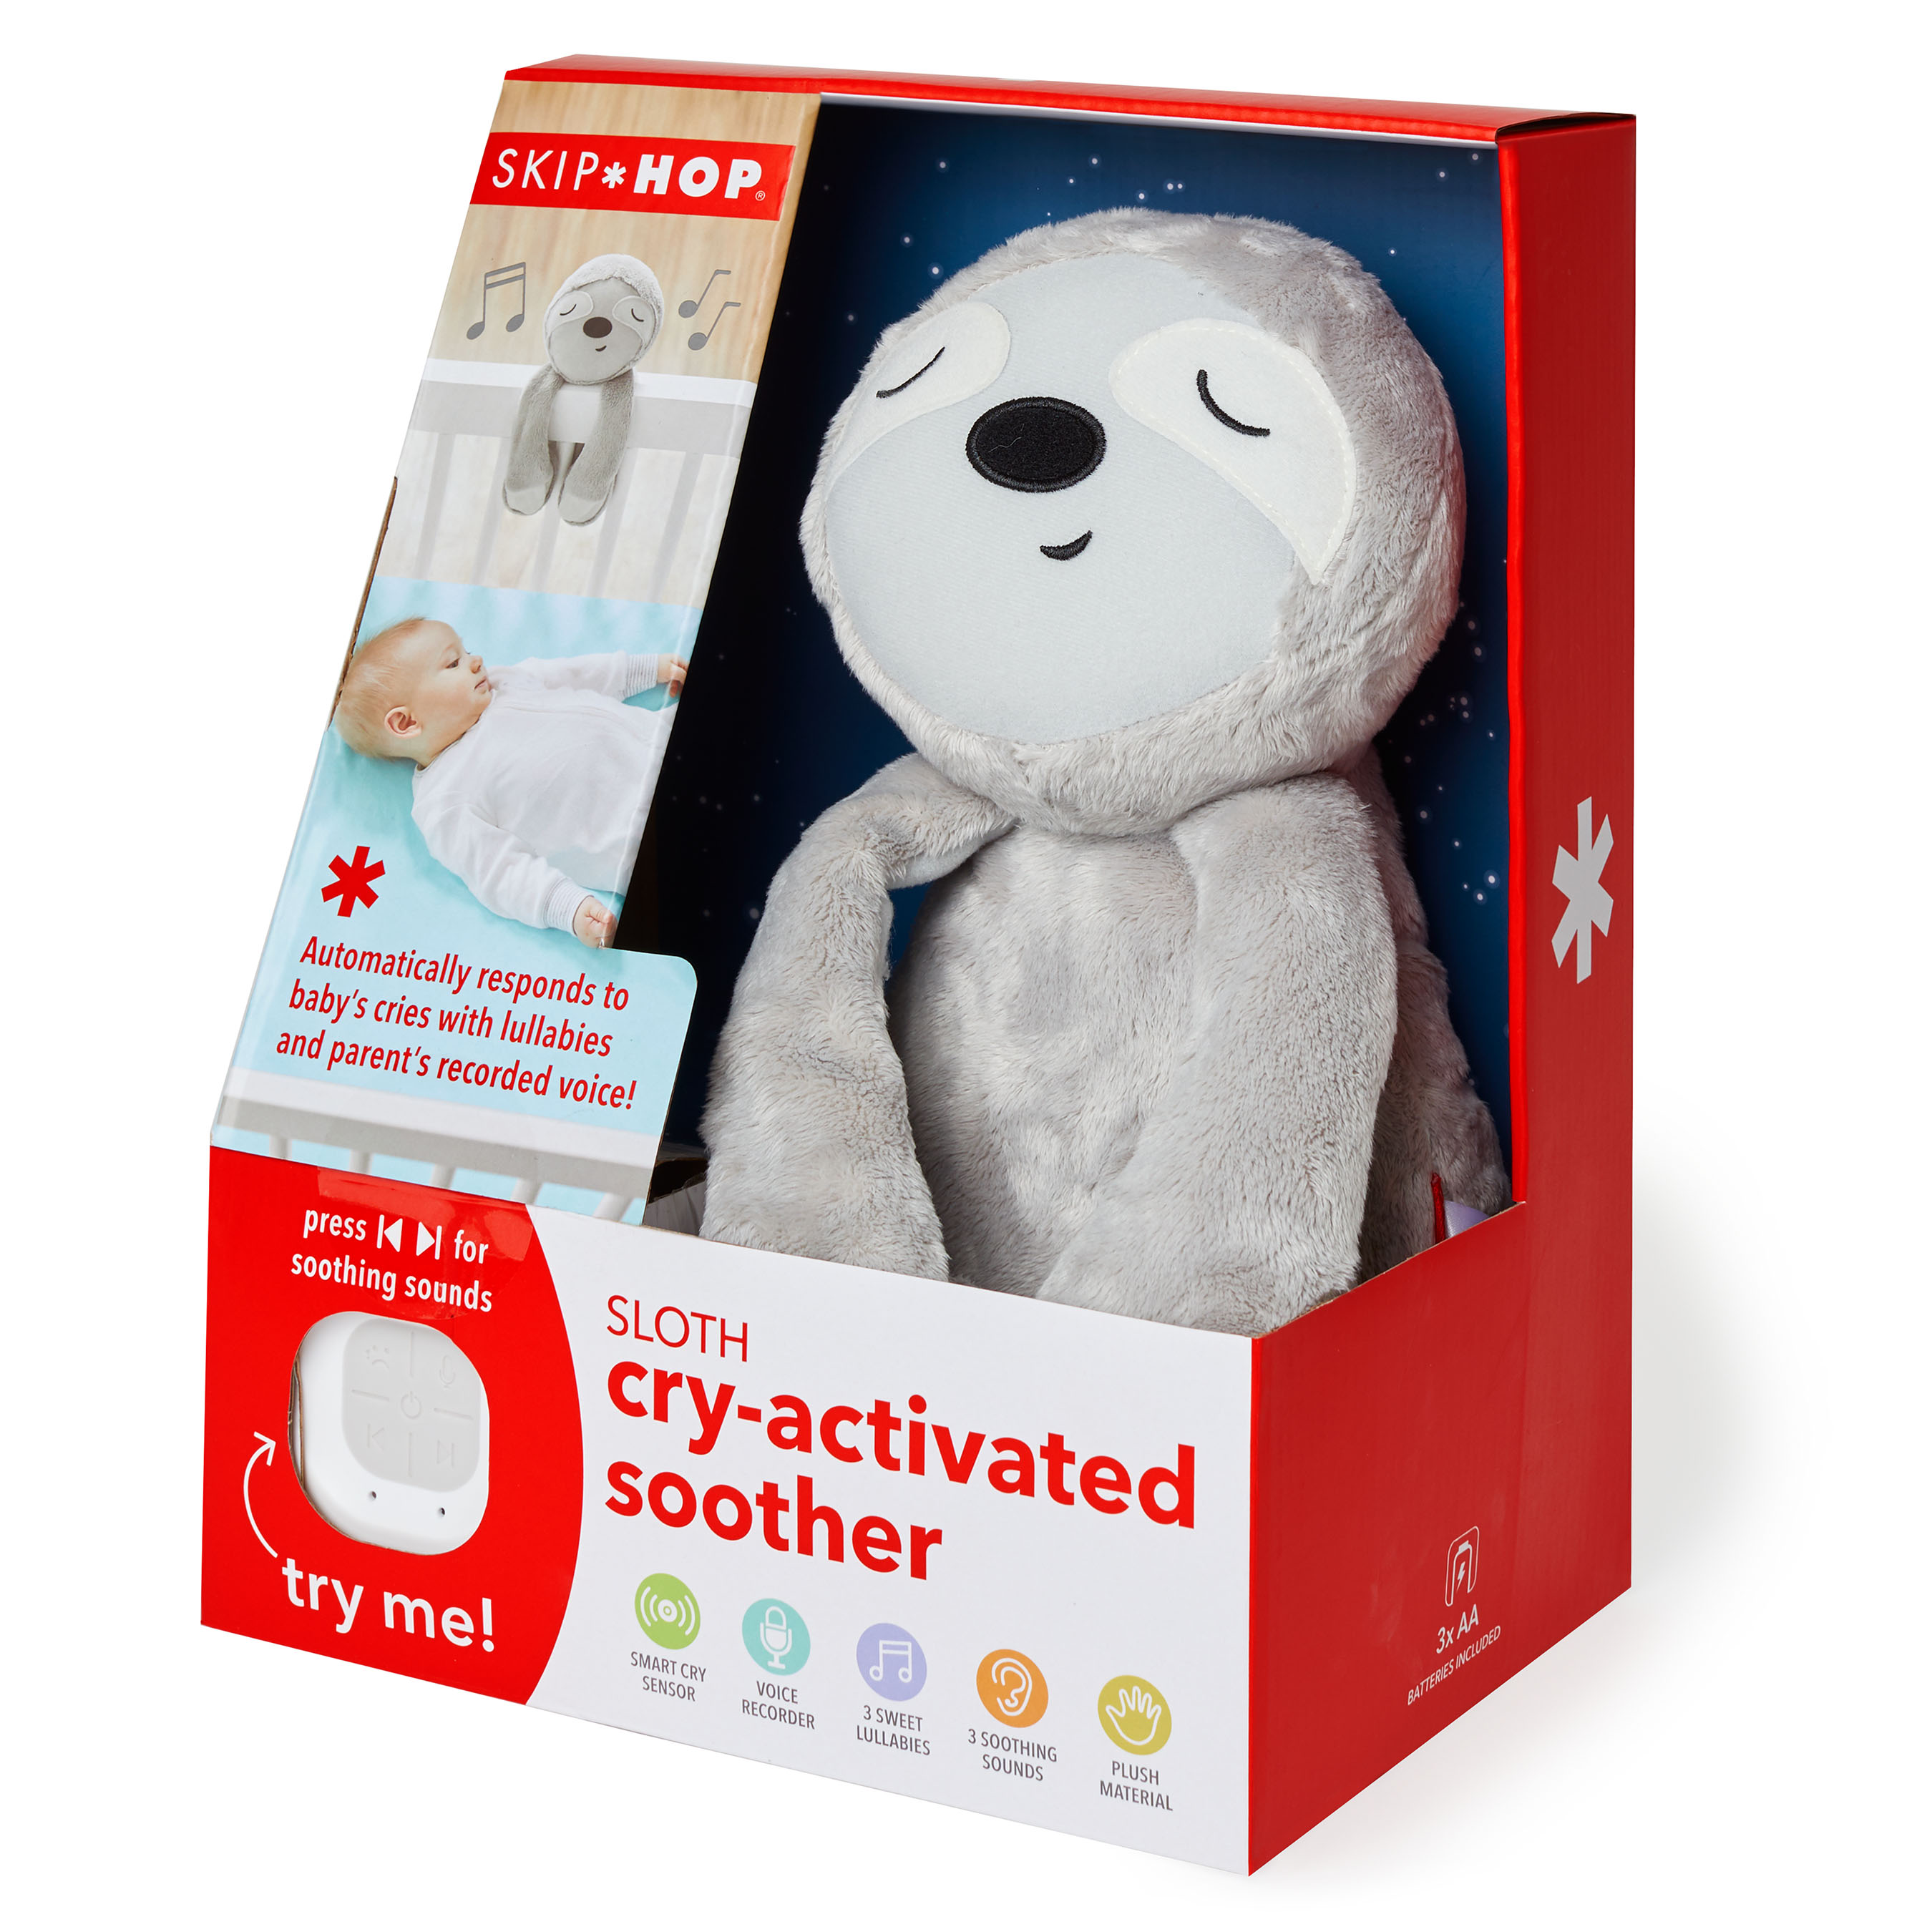 Cry-activated soother - sloth